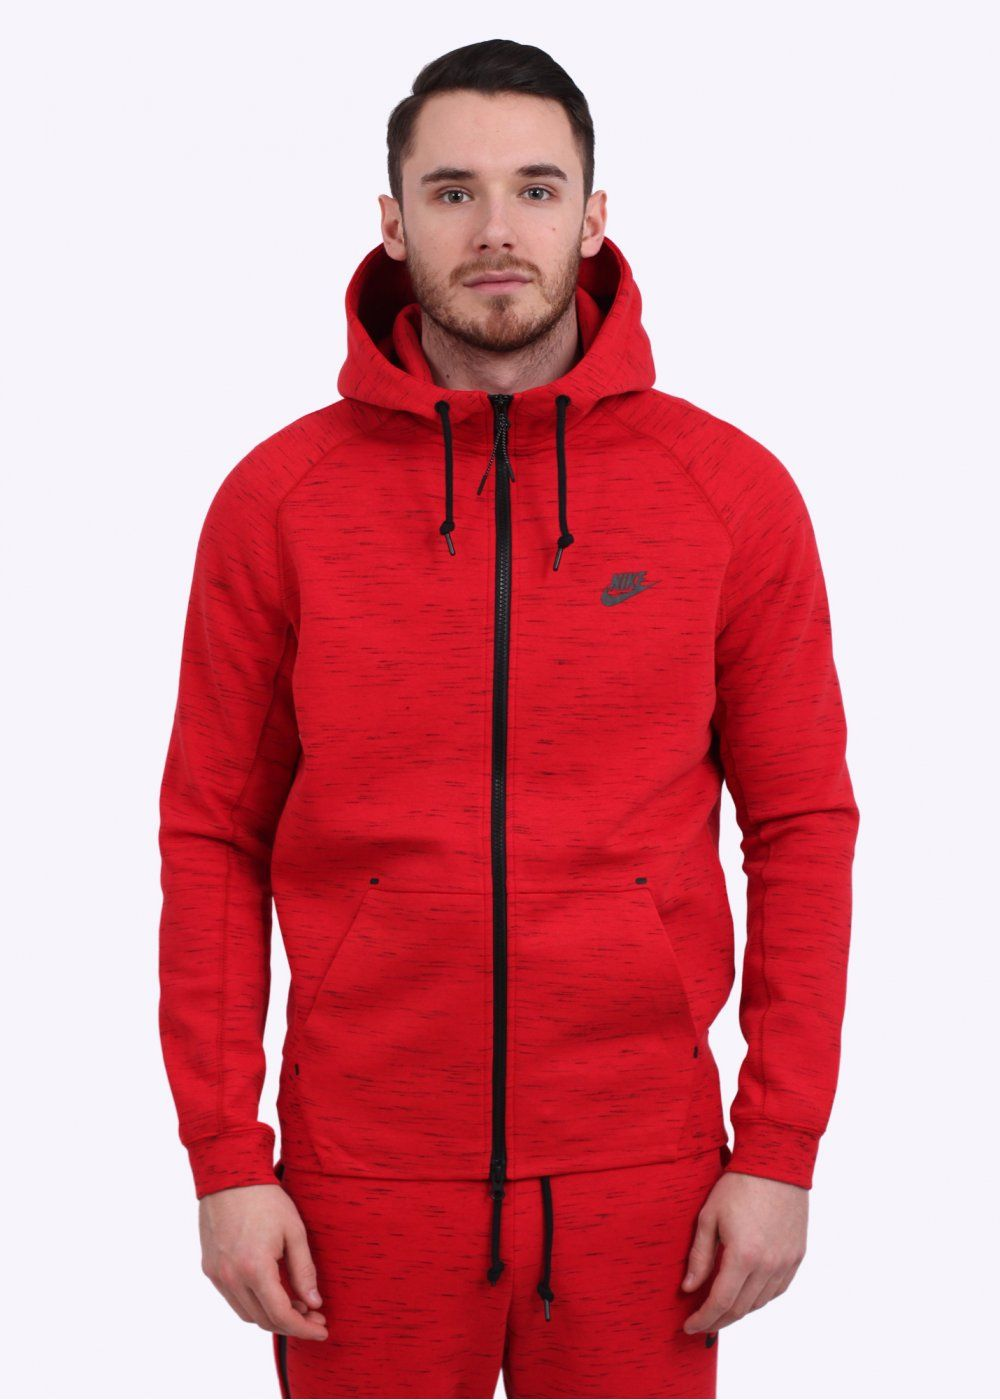 Nike AW77 Tech Fleece Hoodie - Red  49b7e19922